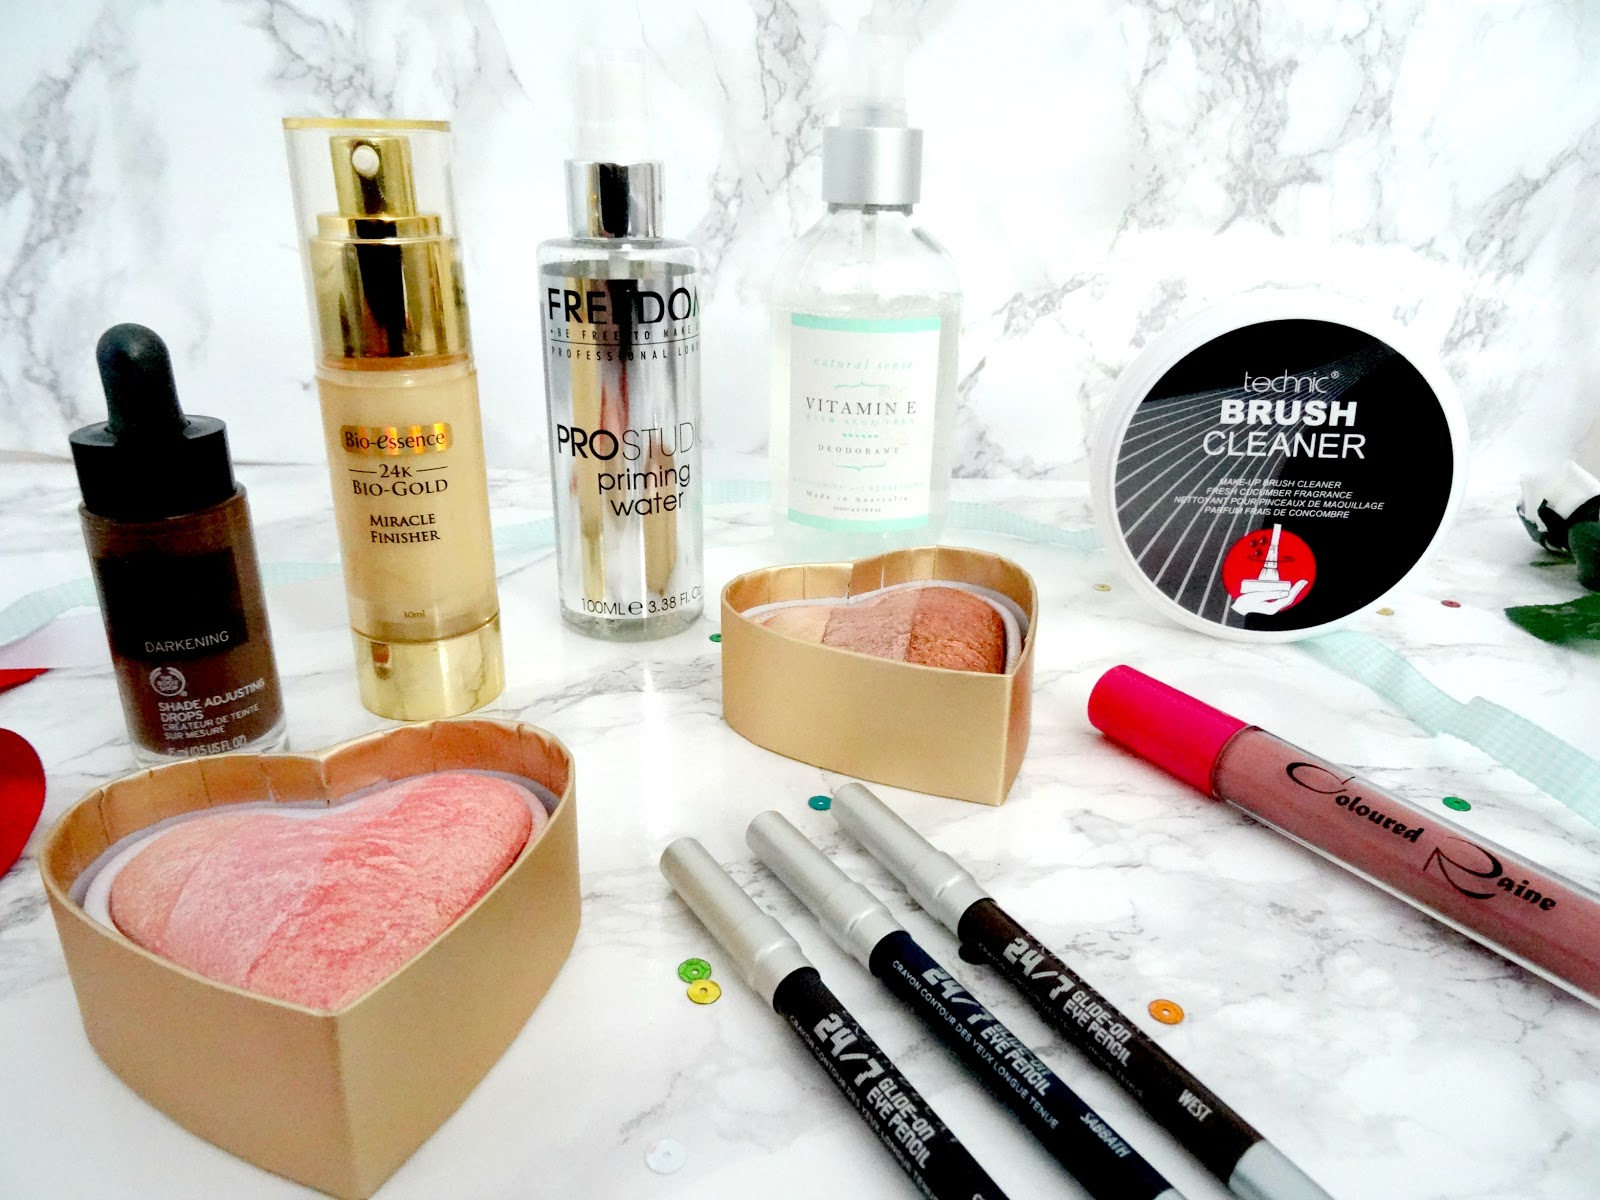 New In My Collection / Beauty Haul Featuring Urban Decay, Bioessence, Freedom